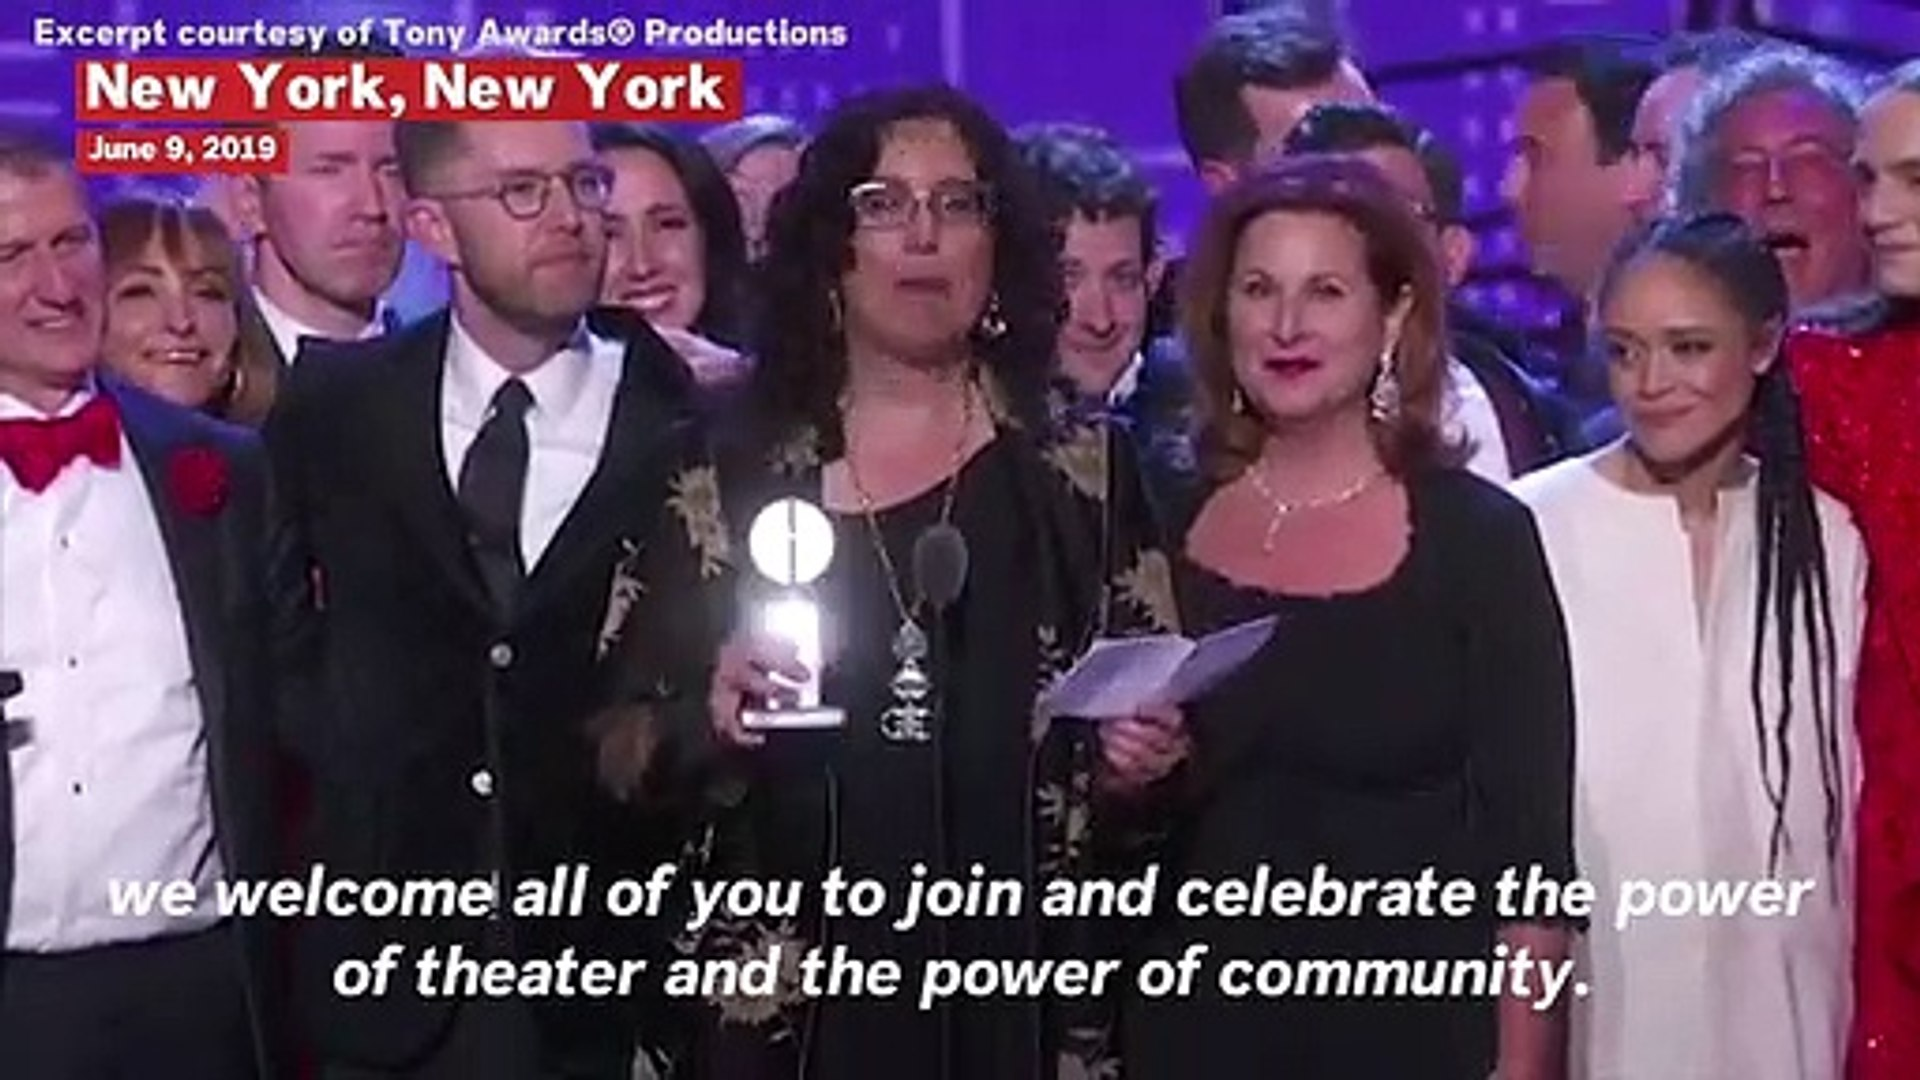 The Cast Of 'Hadestown' Performs 'Wait For Me' At The 2019 Tony Awards